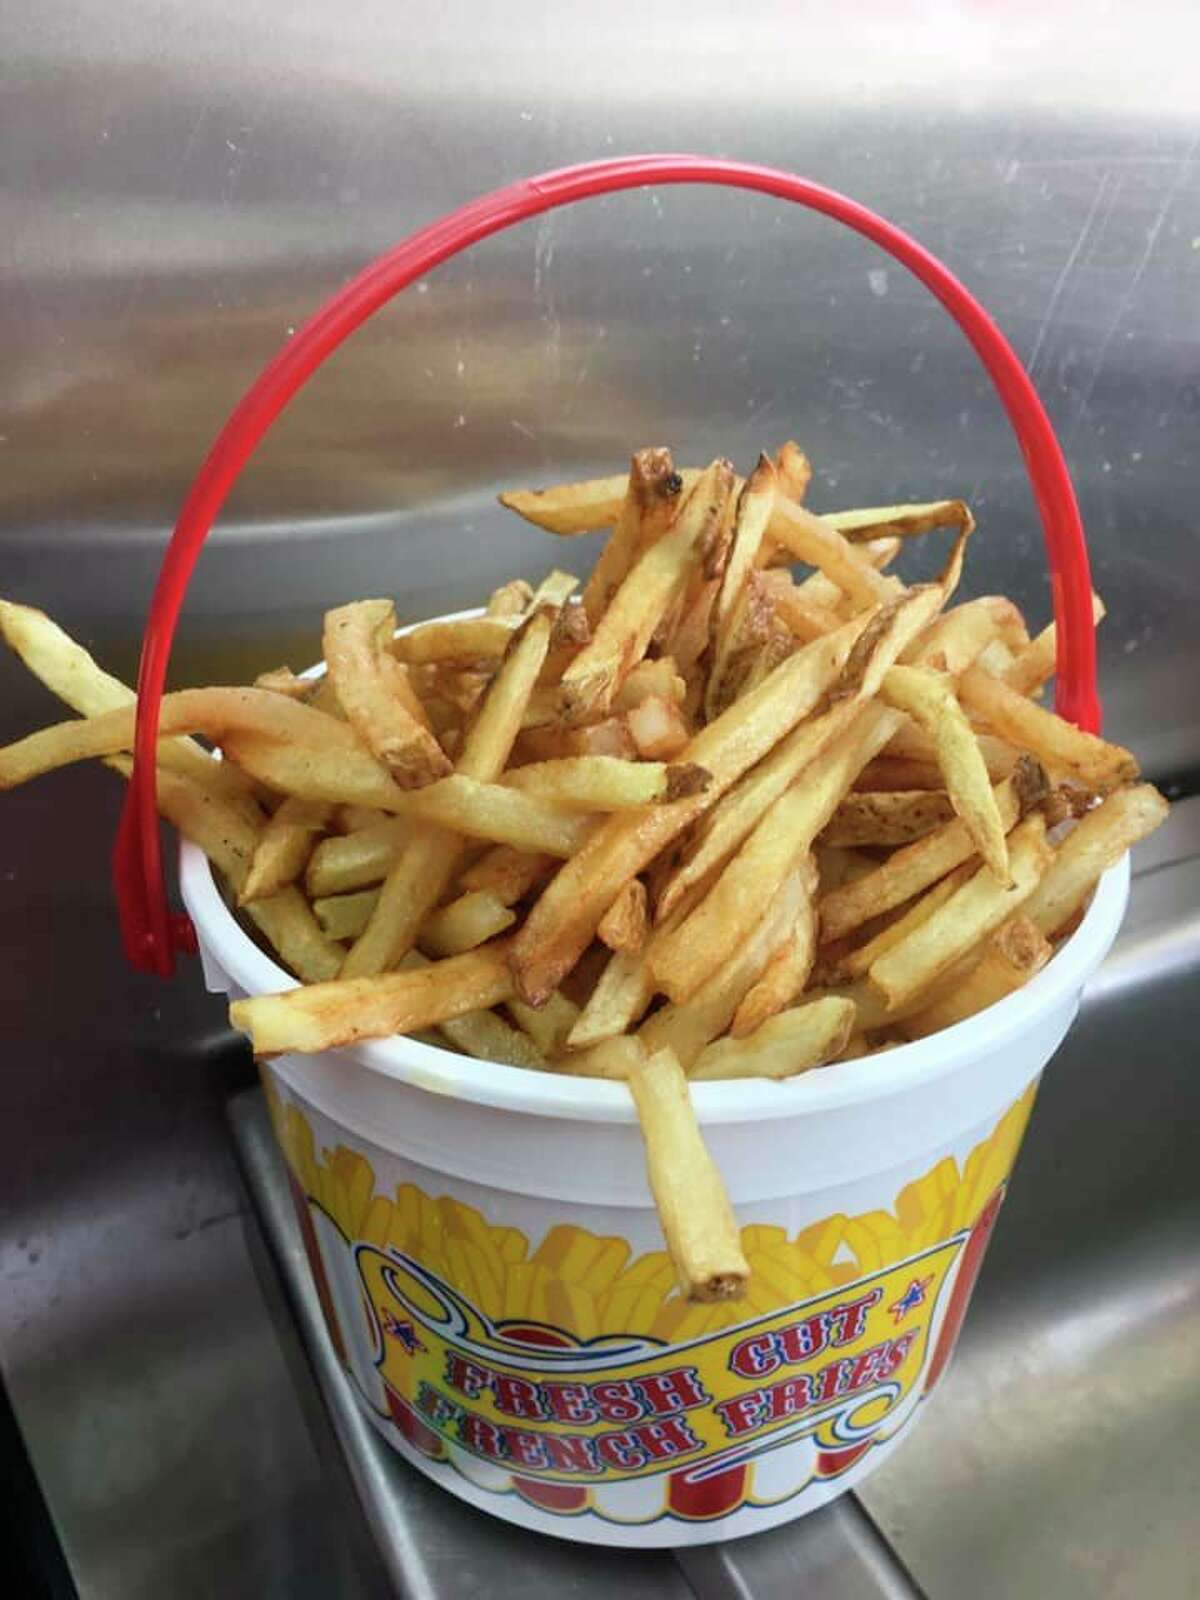 Community fair favorites,including elephant ears and fresh cut fries, will be available this weekend at Thumb Storage and Suite Solutions, along with some new selections, including cotton candy and bubble tea. (Bechler's Fun Foods/Courtesy Photo)